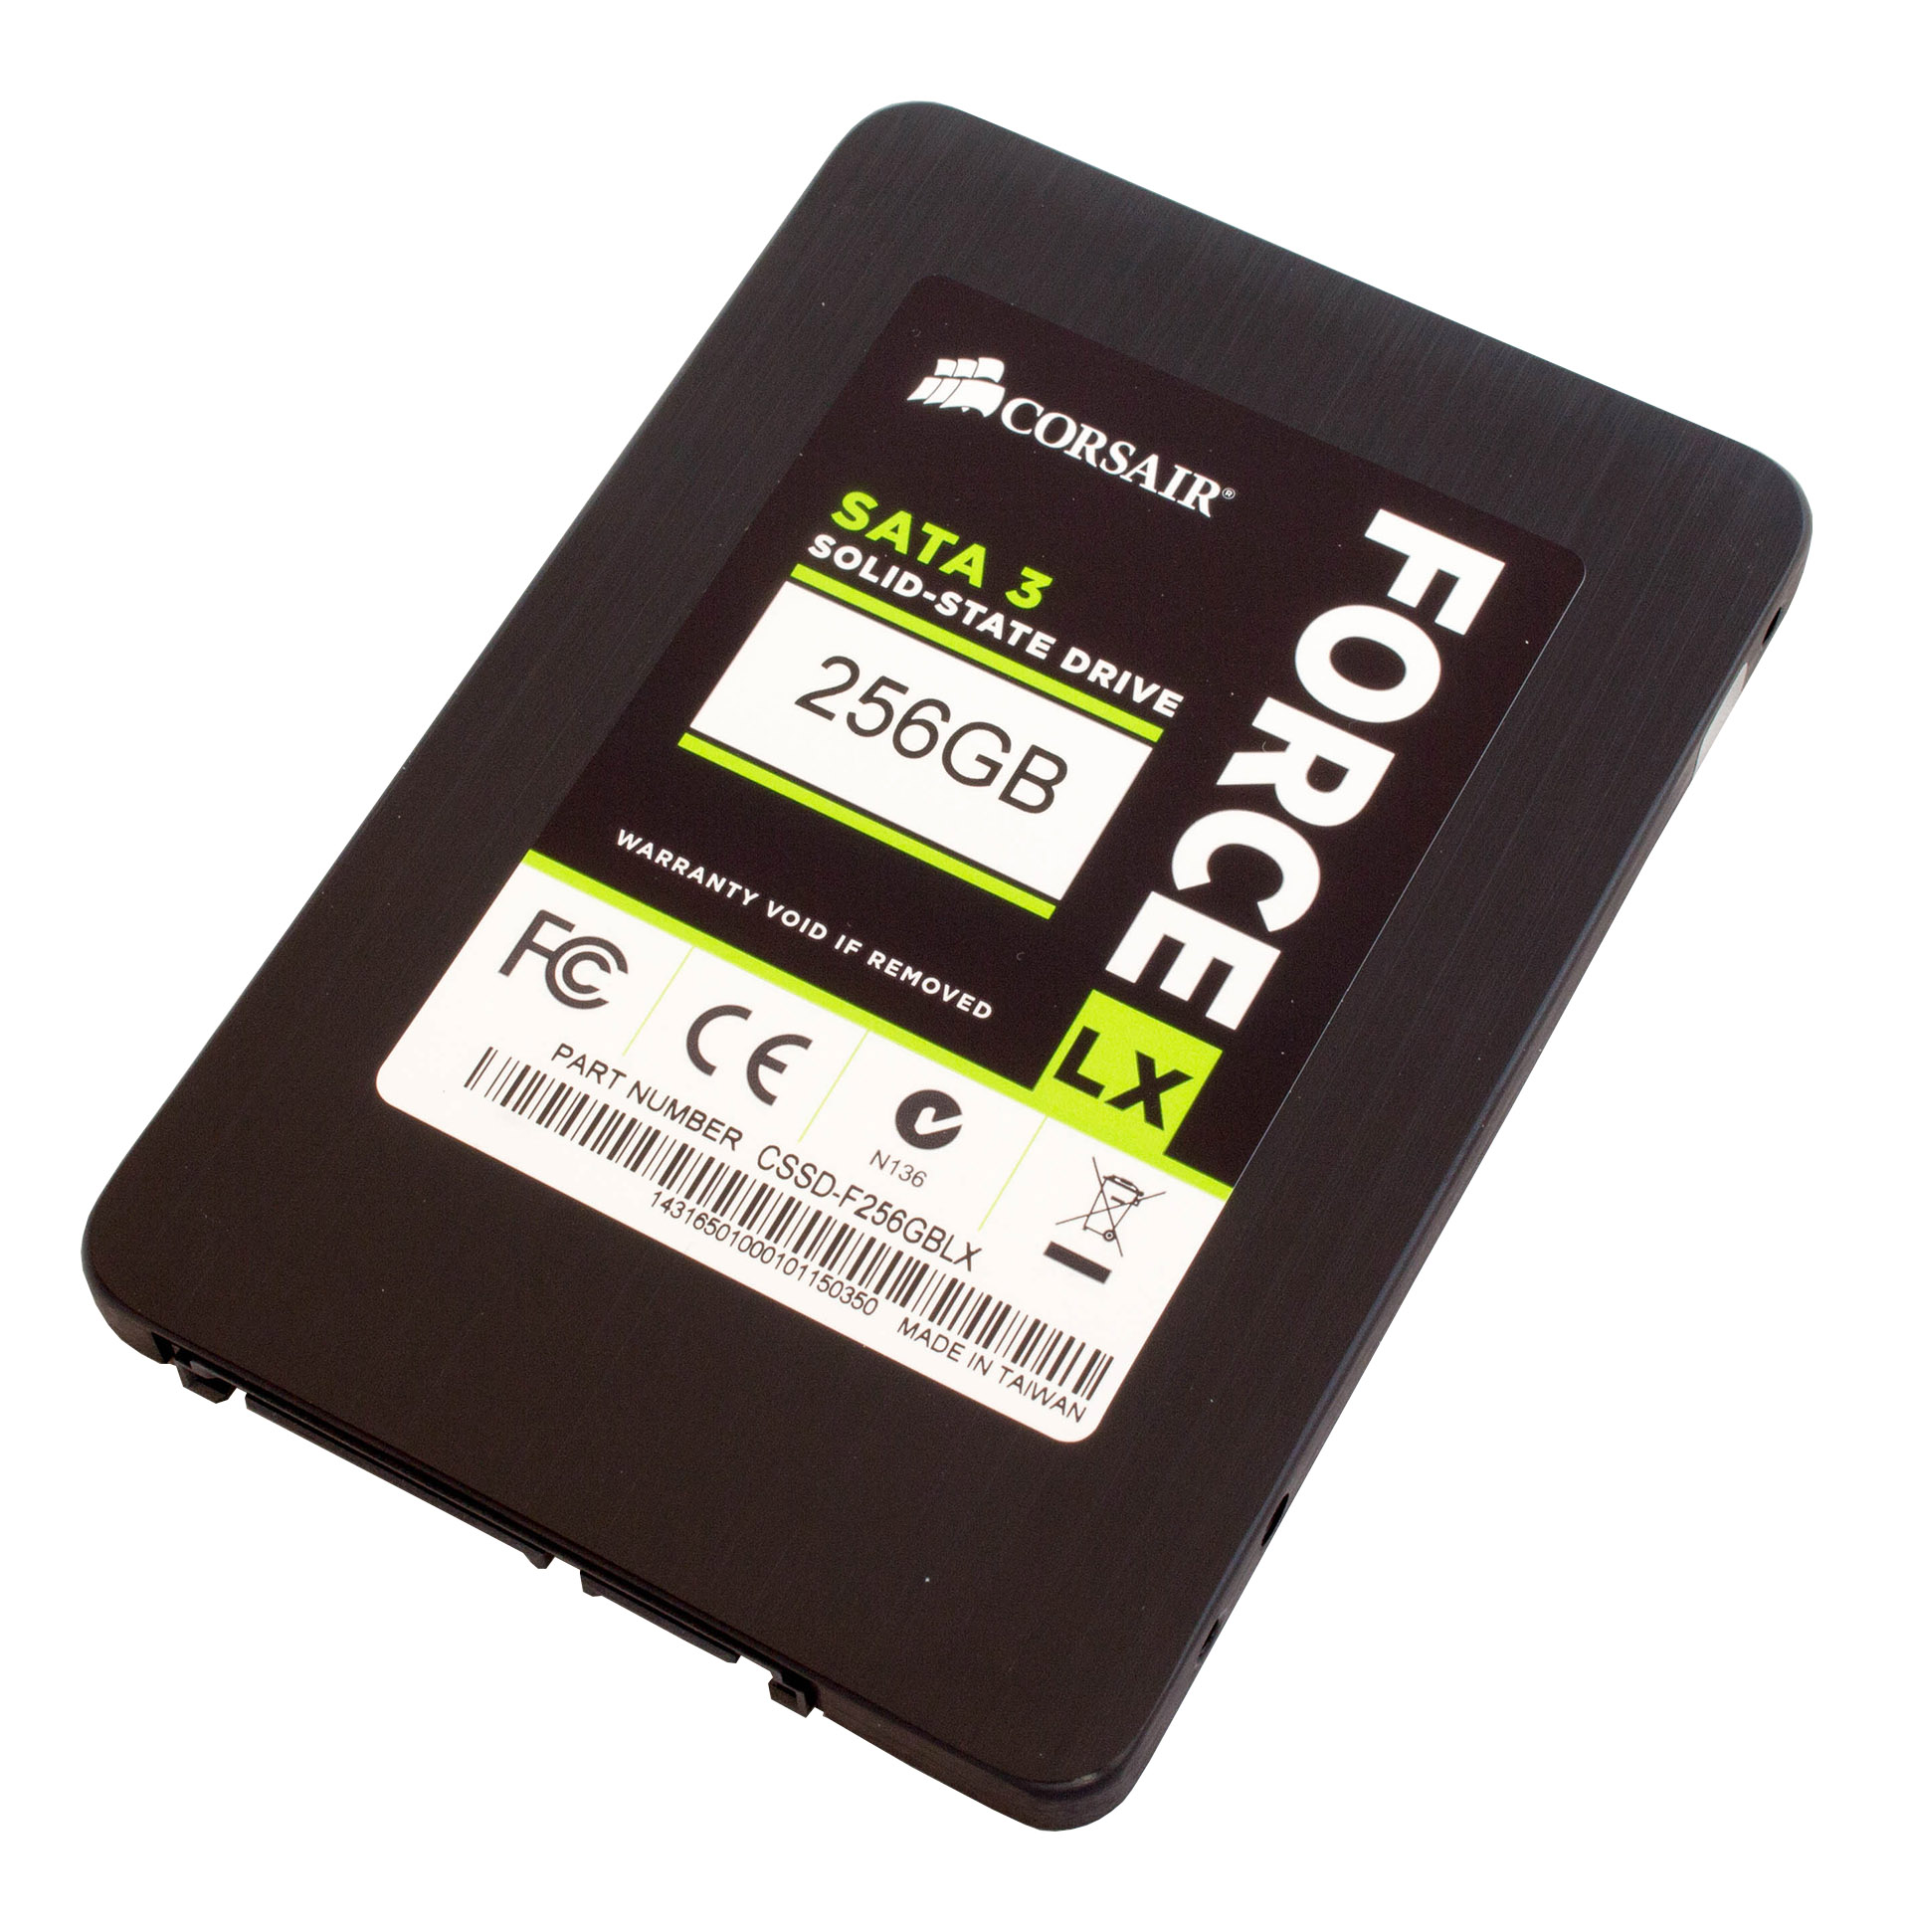 Corsair Force LX 256GB